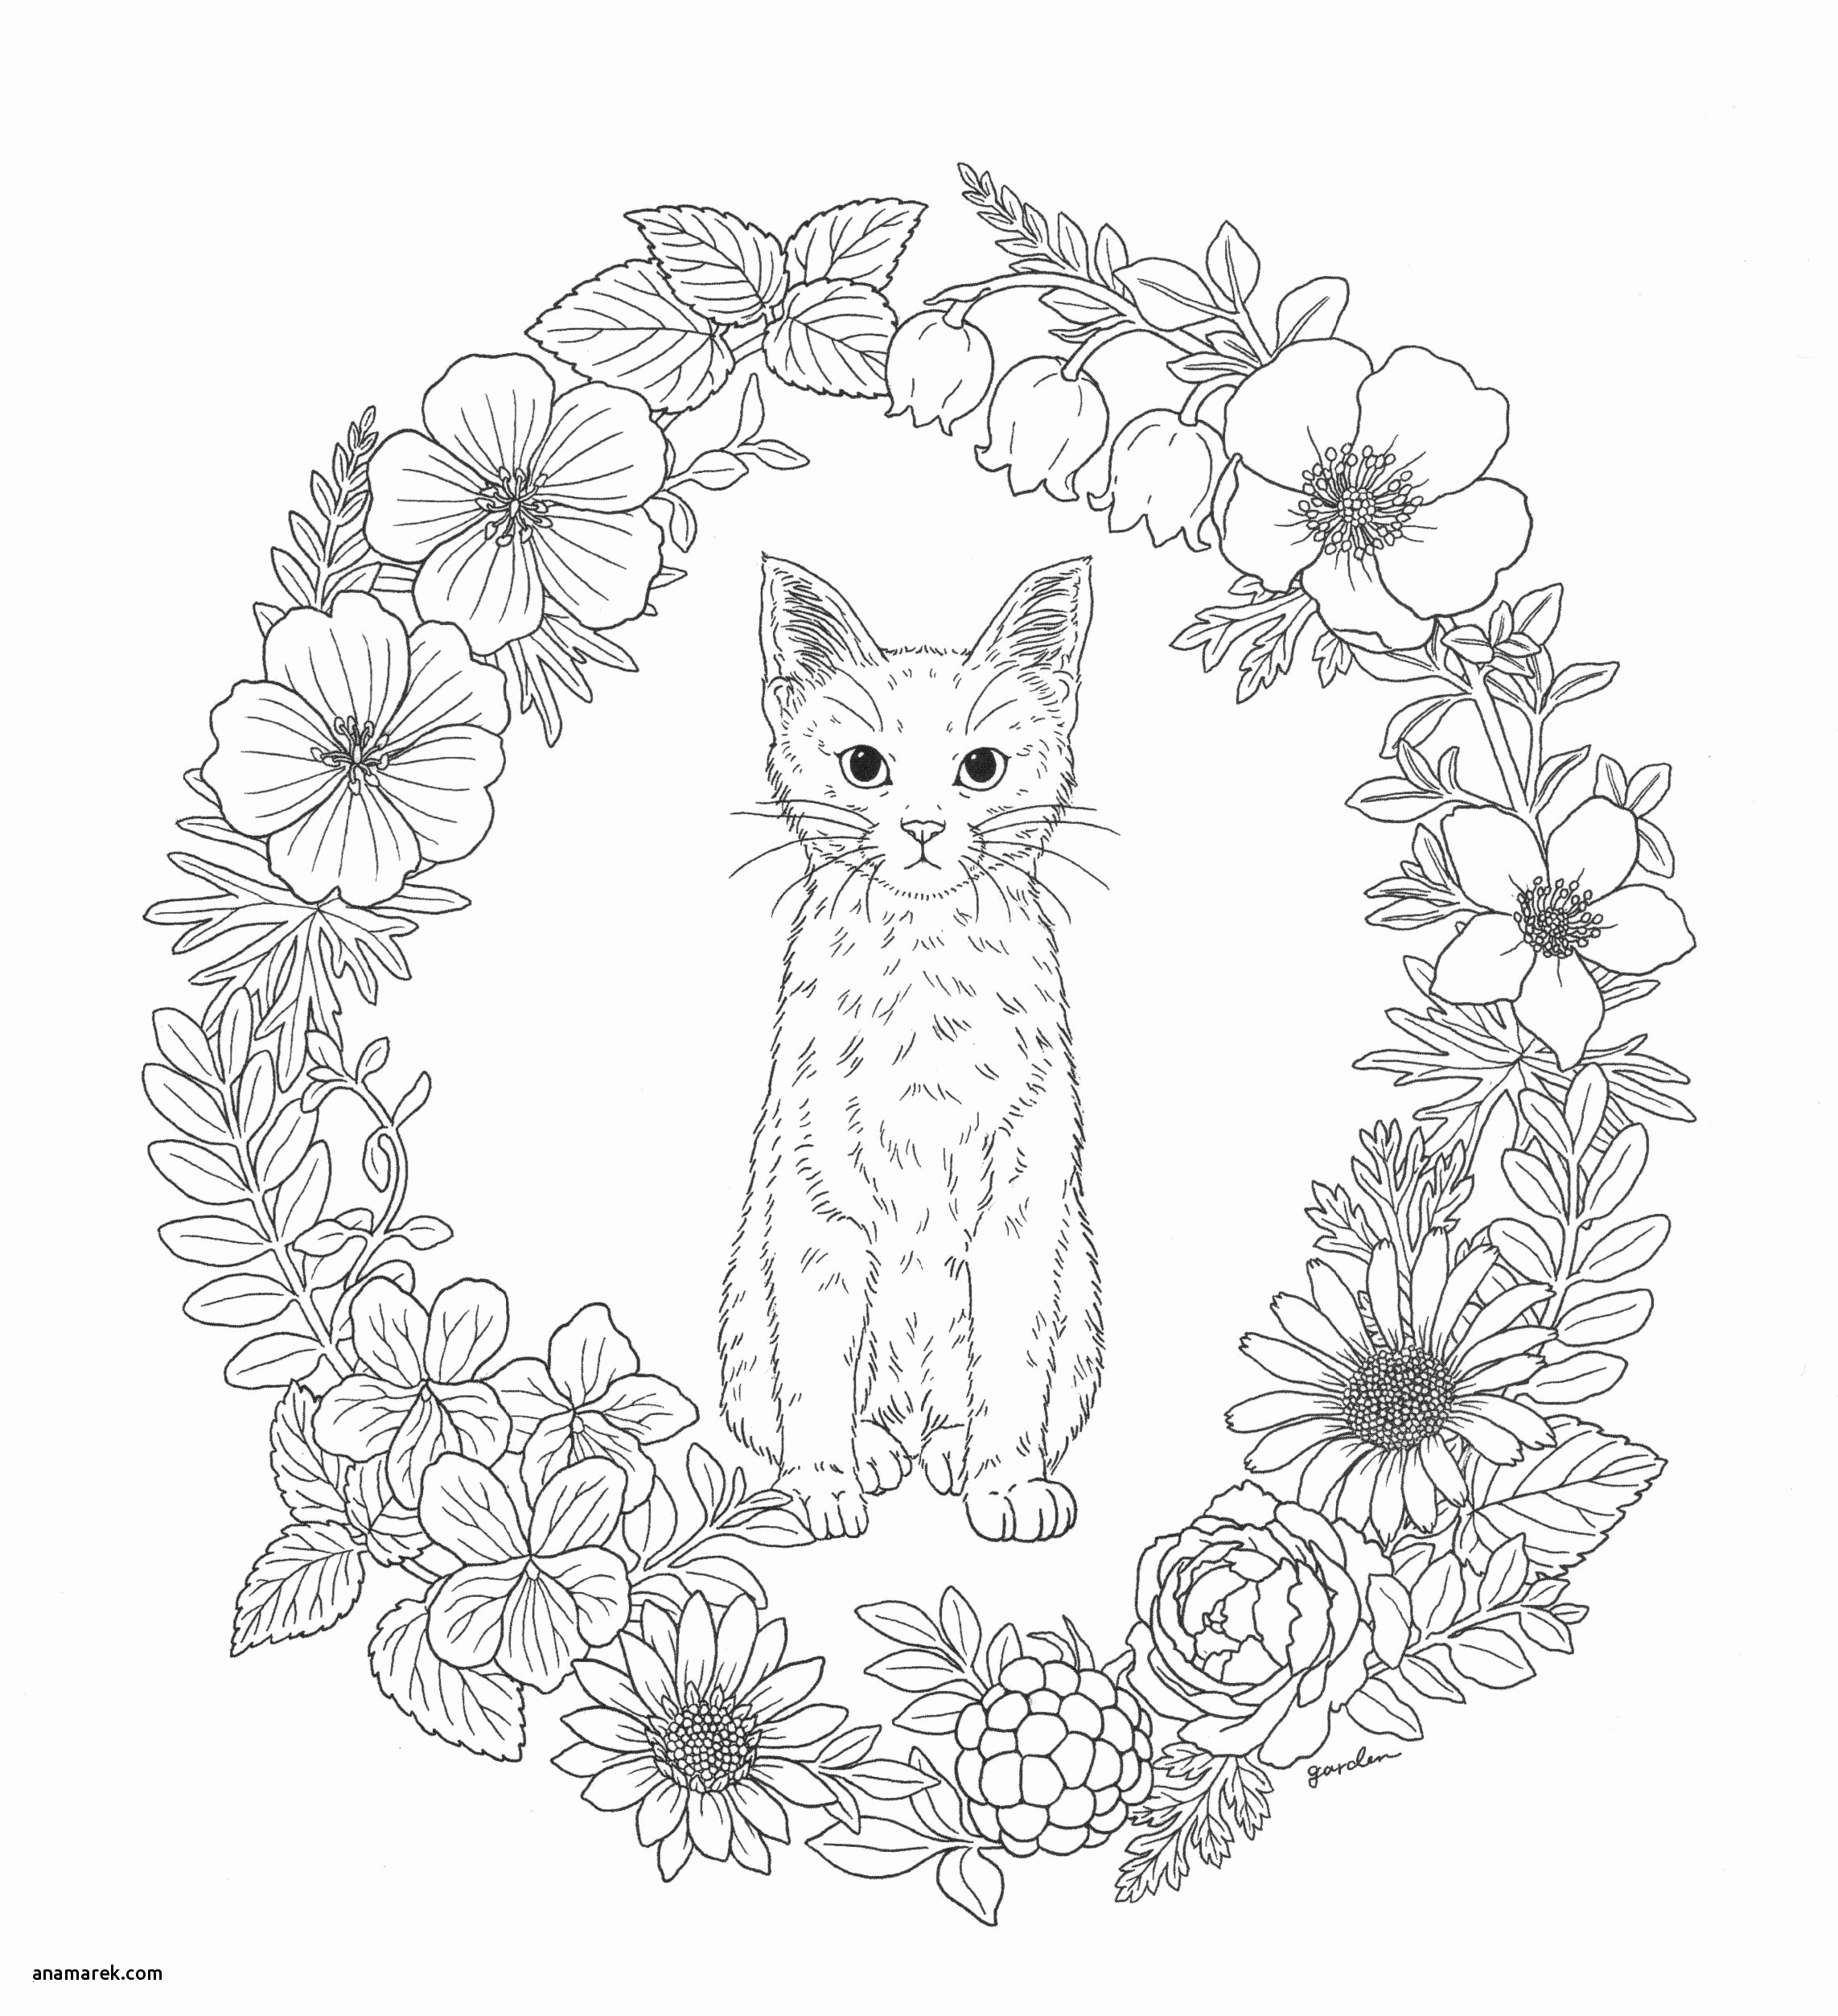 coloring mandala cat cat mandala coloring pages from new picts category mandala coloring cat